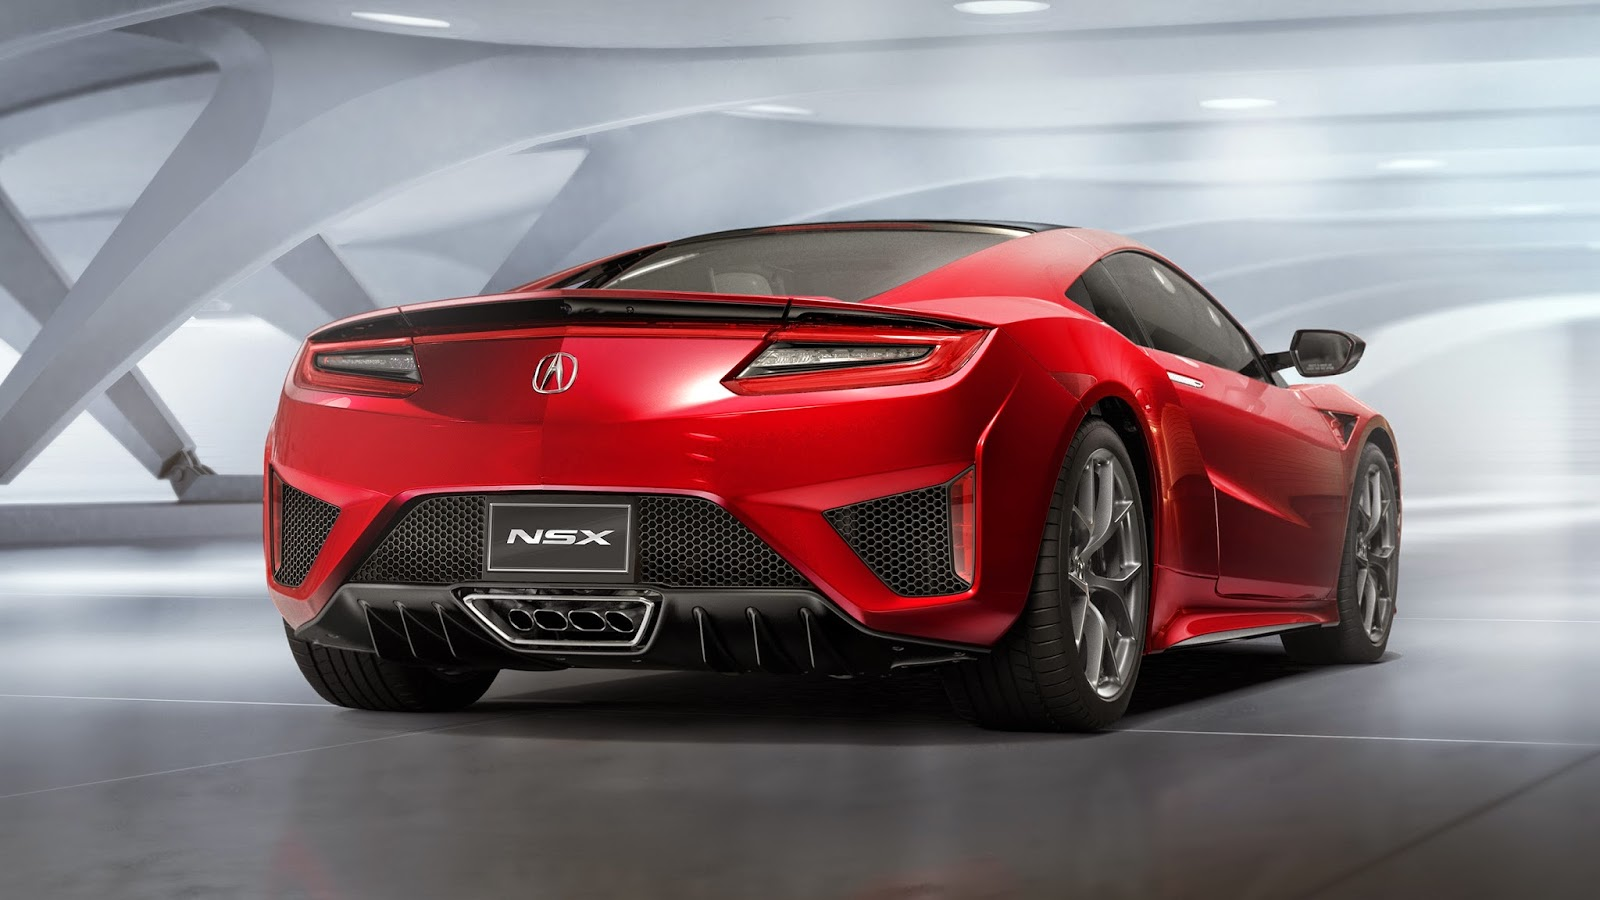 Rear led lights pay homage to the original nsx